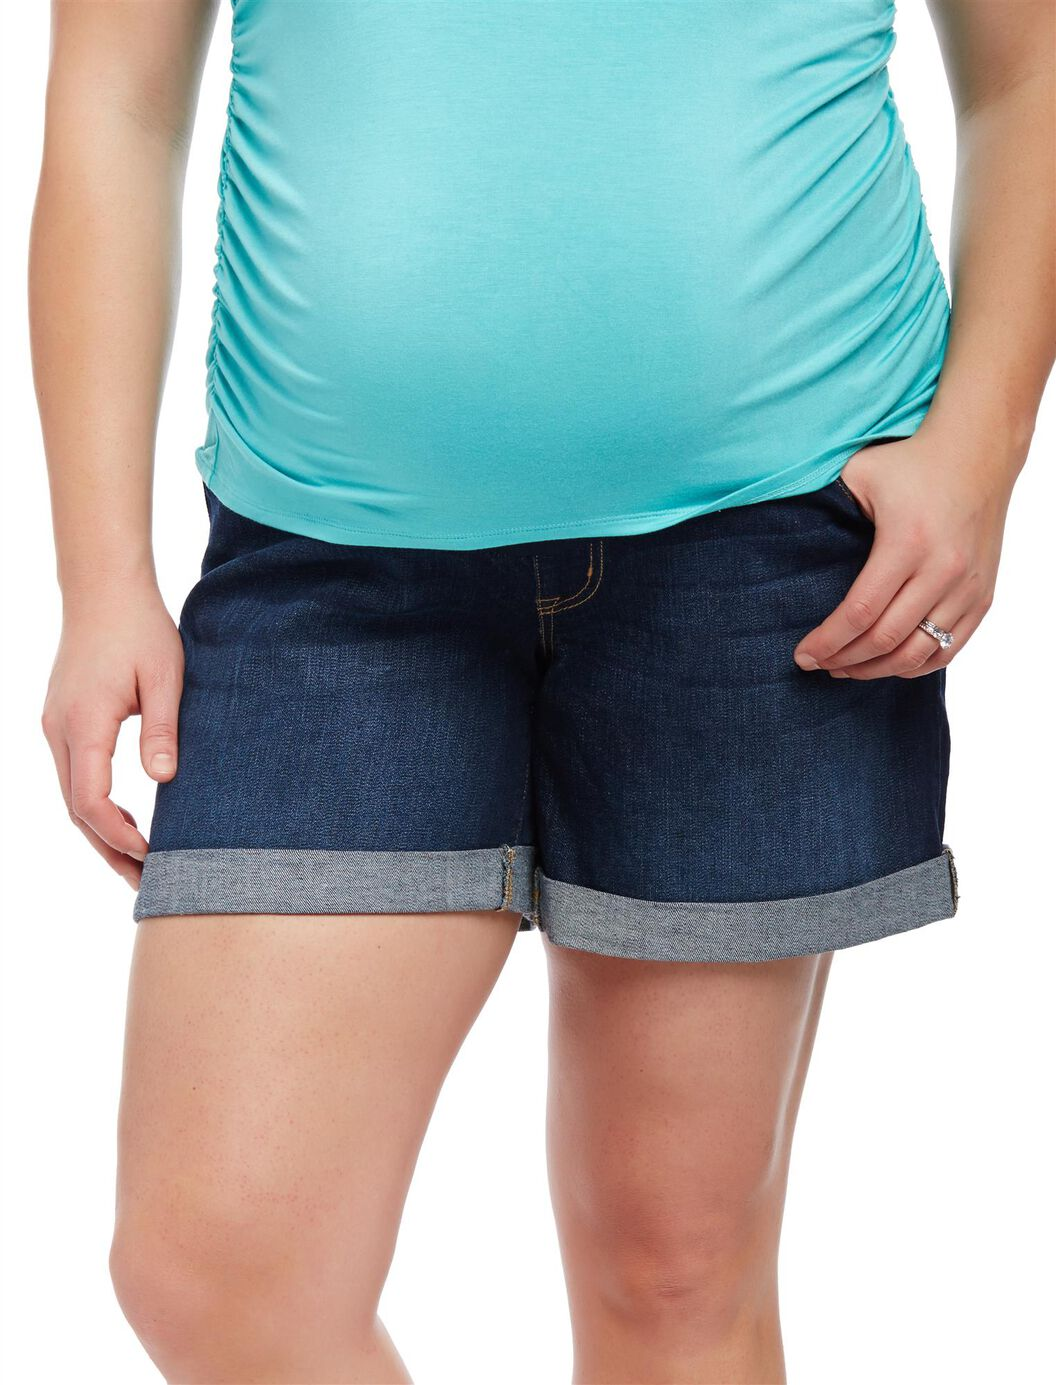 Plus Size Secret Fit Belly Roll Hem Maternity Shorts at Motherhood Maternity in Victor, NY | Tuggl